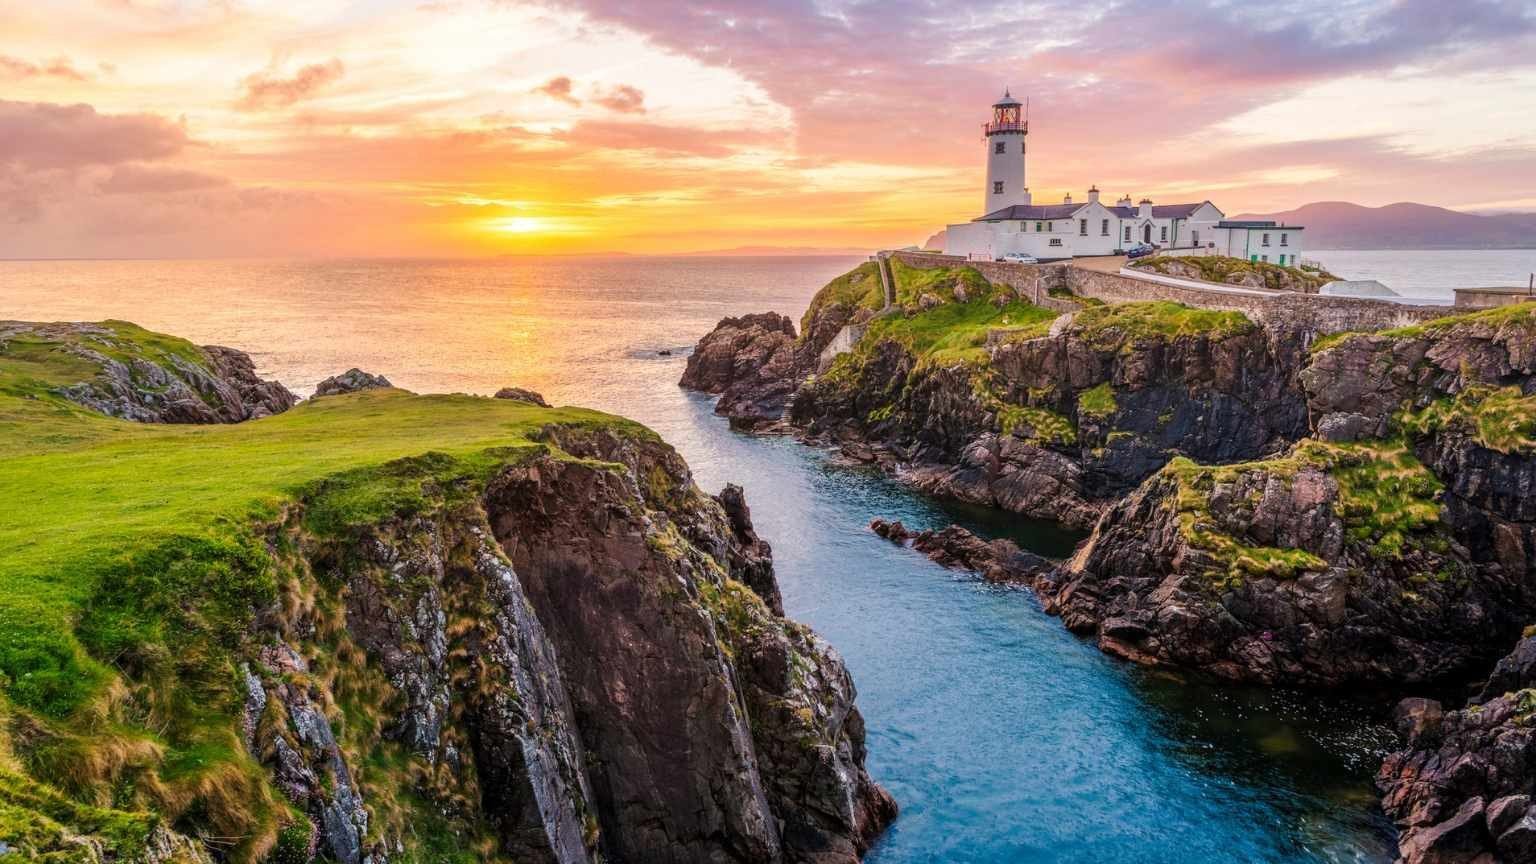 View of a lighthouse on the Ireland Coast at sunset